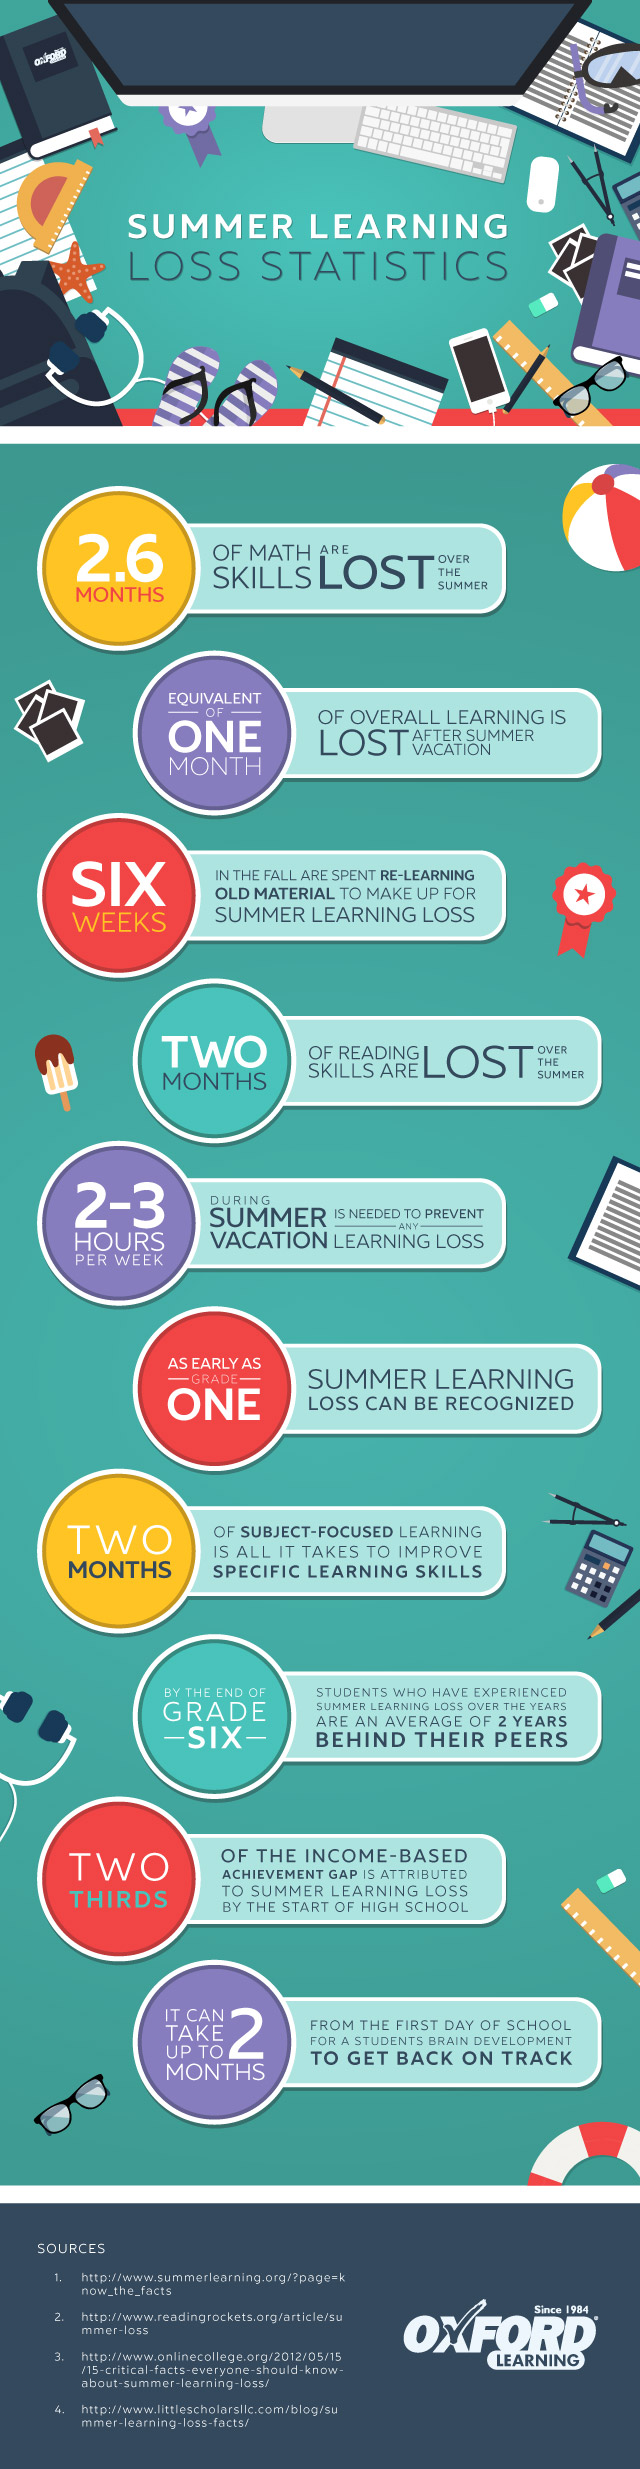 Source: https://www.oxfordlearning.com/summer-learning-loss-statistics/